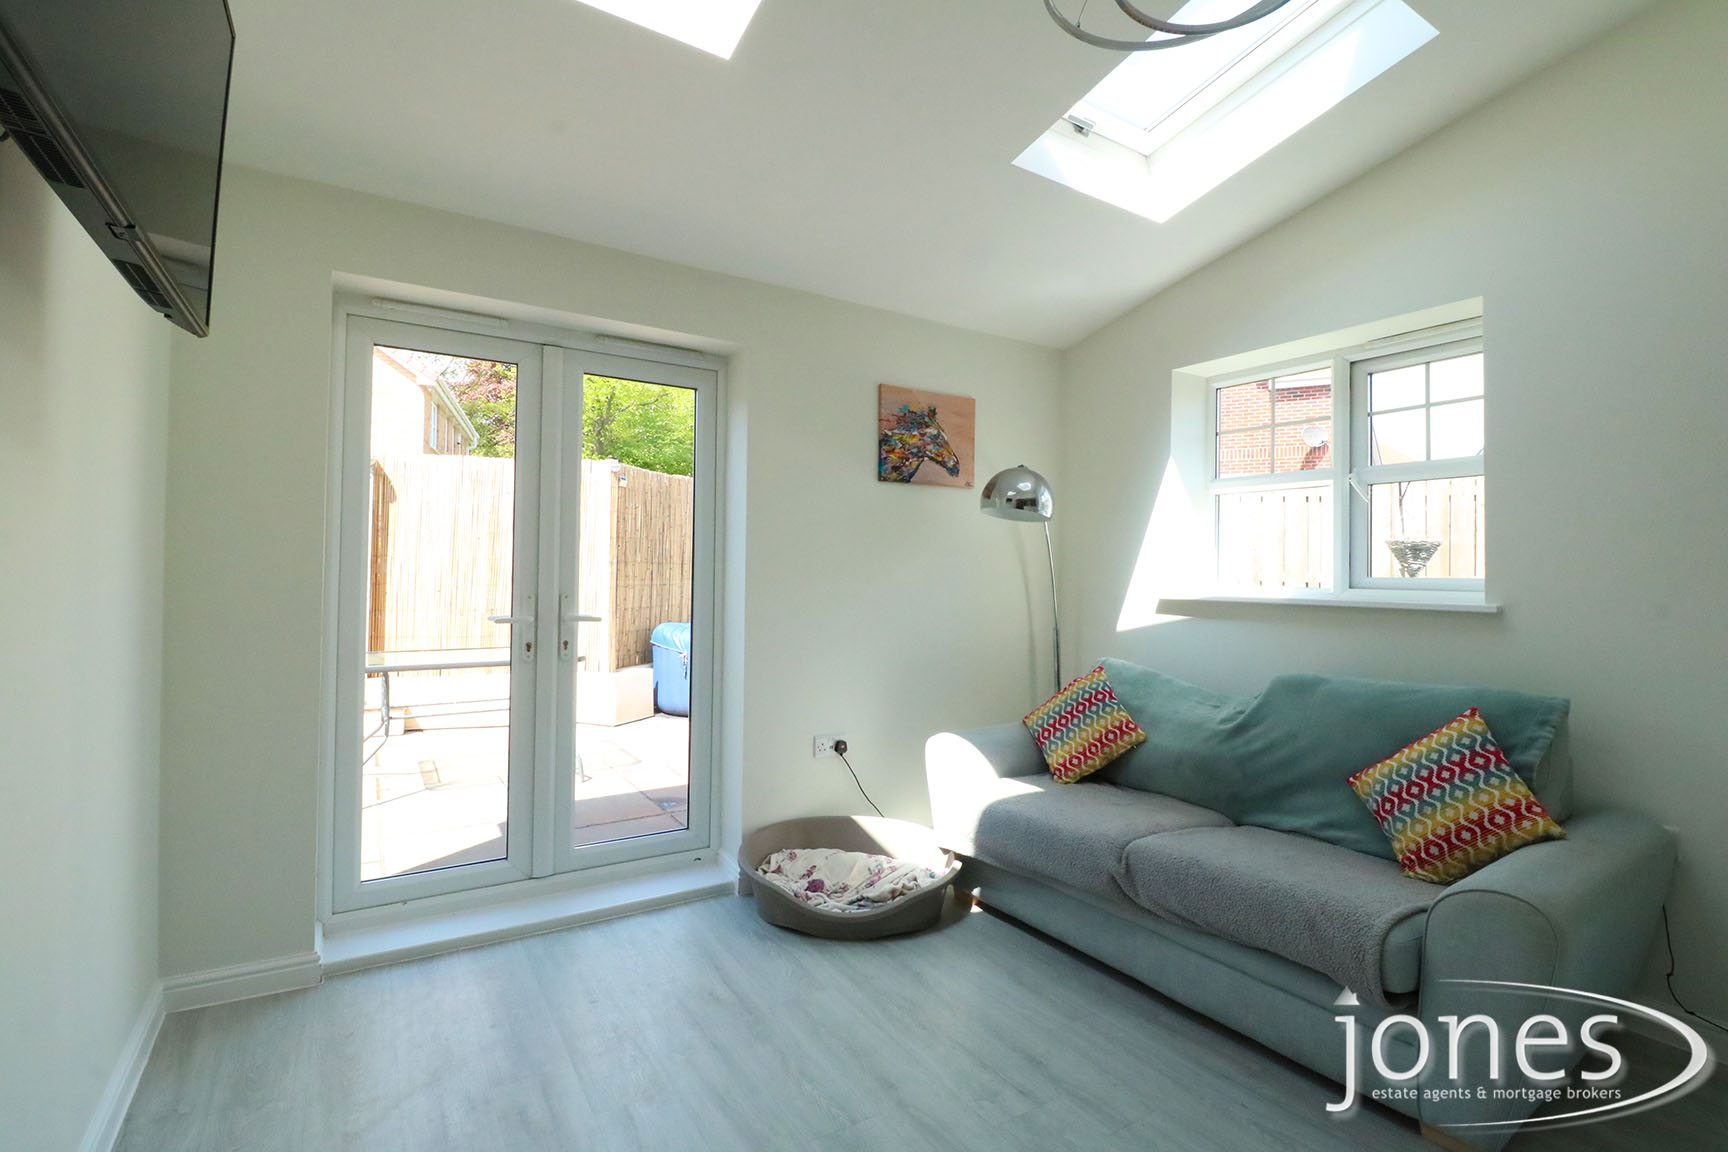 Home for Sale Let - Photo 05 Aristotle Drive, Stockton on Tees,  TS19 8GH